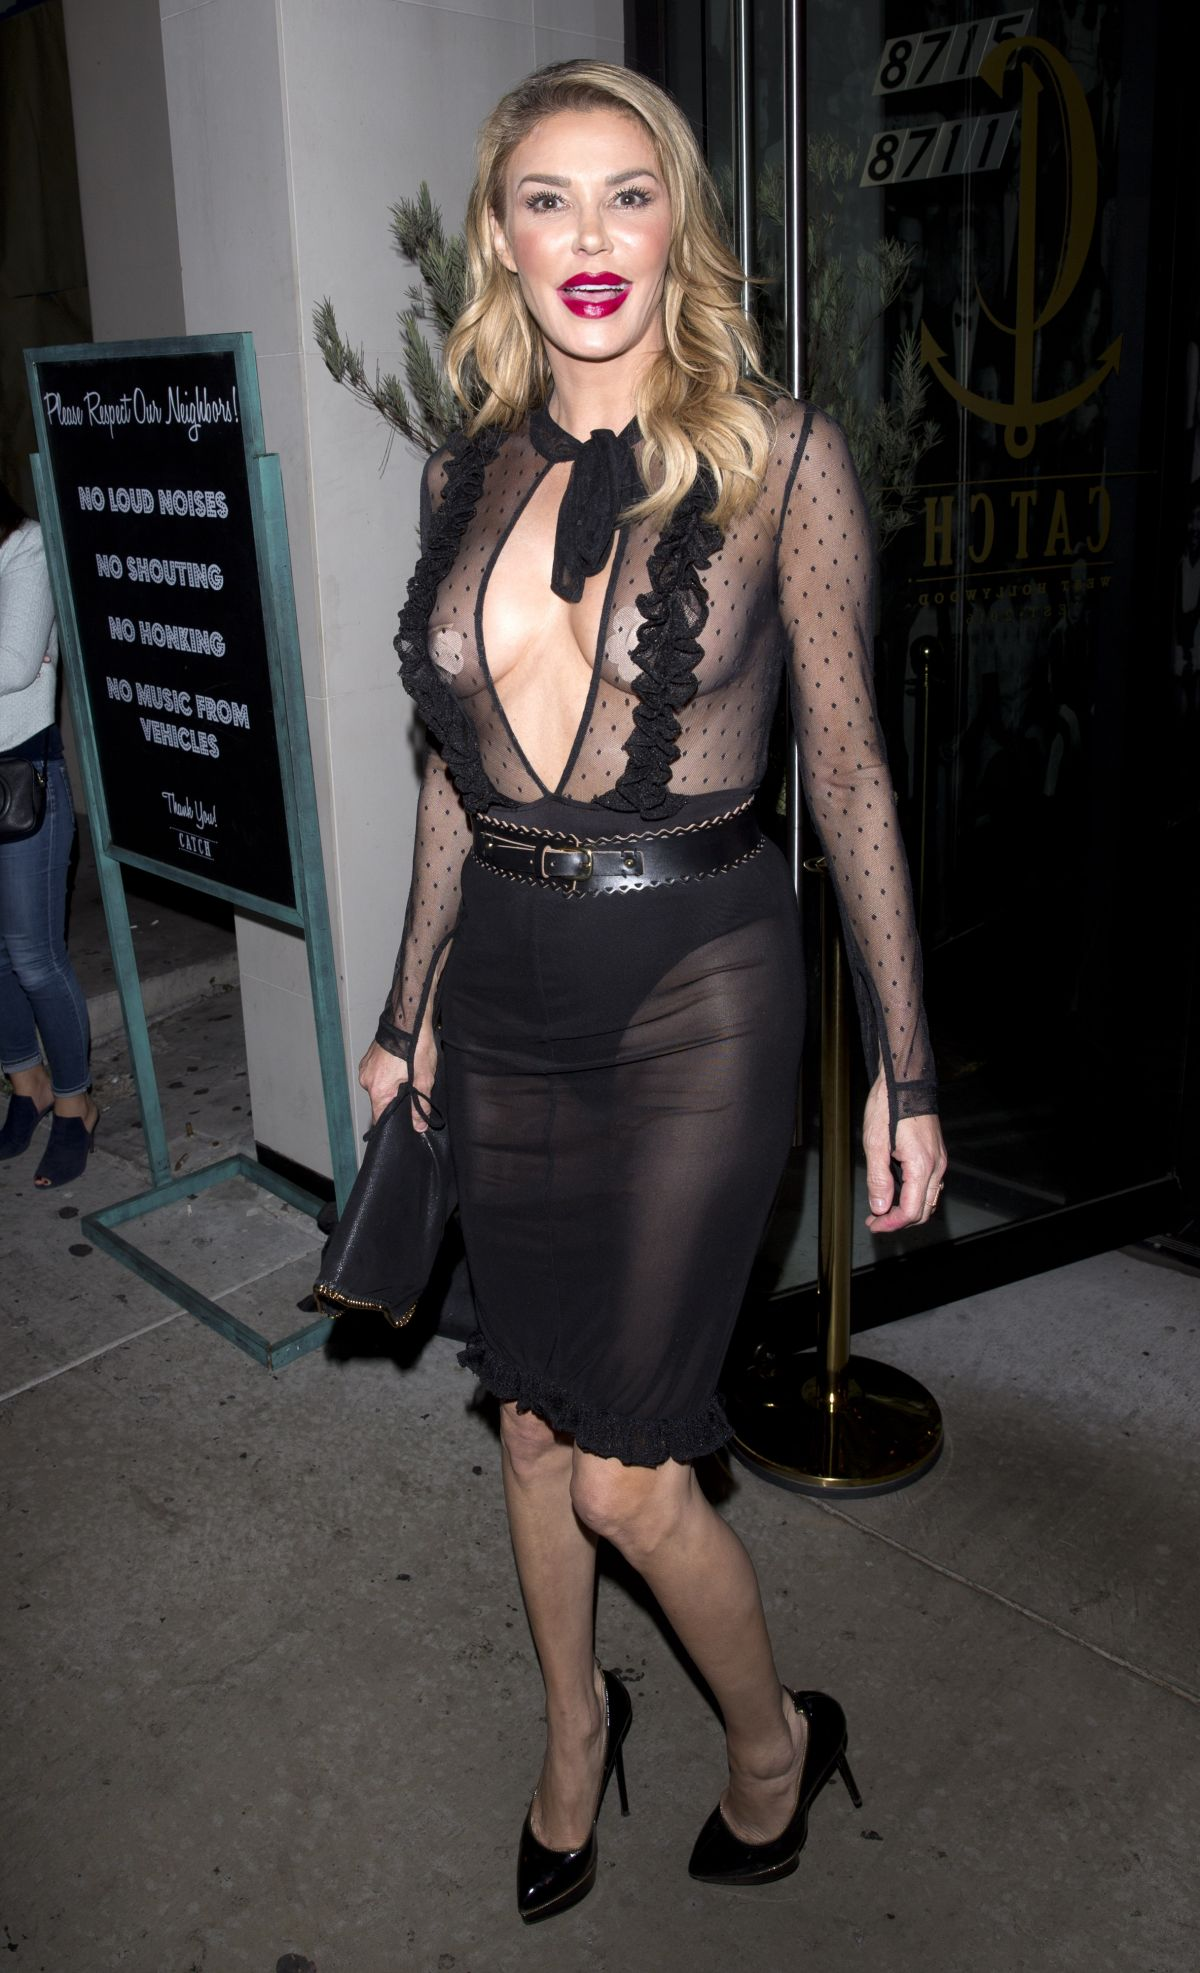 Pics Brandi Glanville nude (57 foto and video), Topless, Cleavage, Instagram, butt 2020